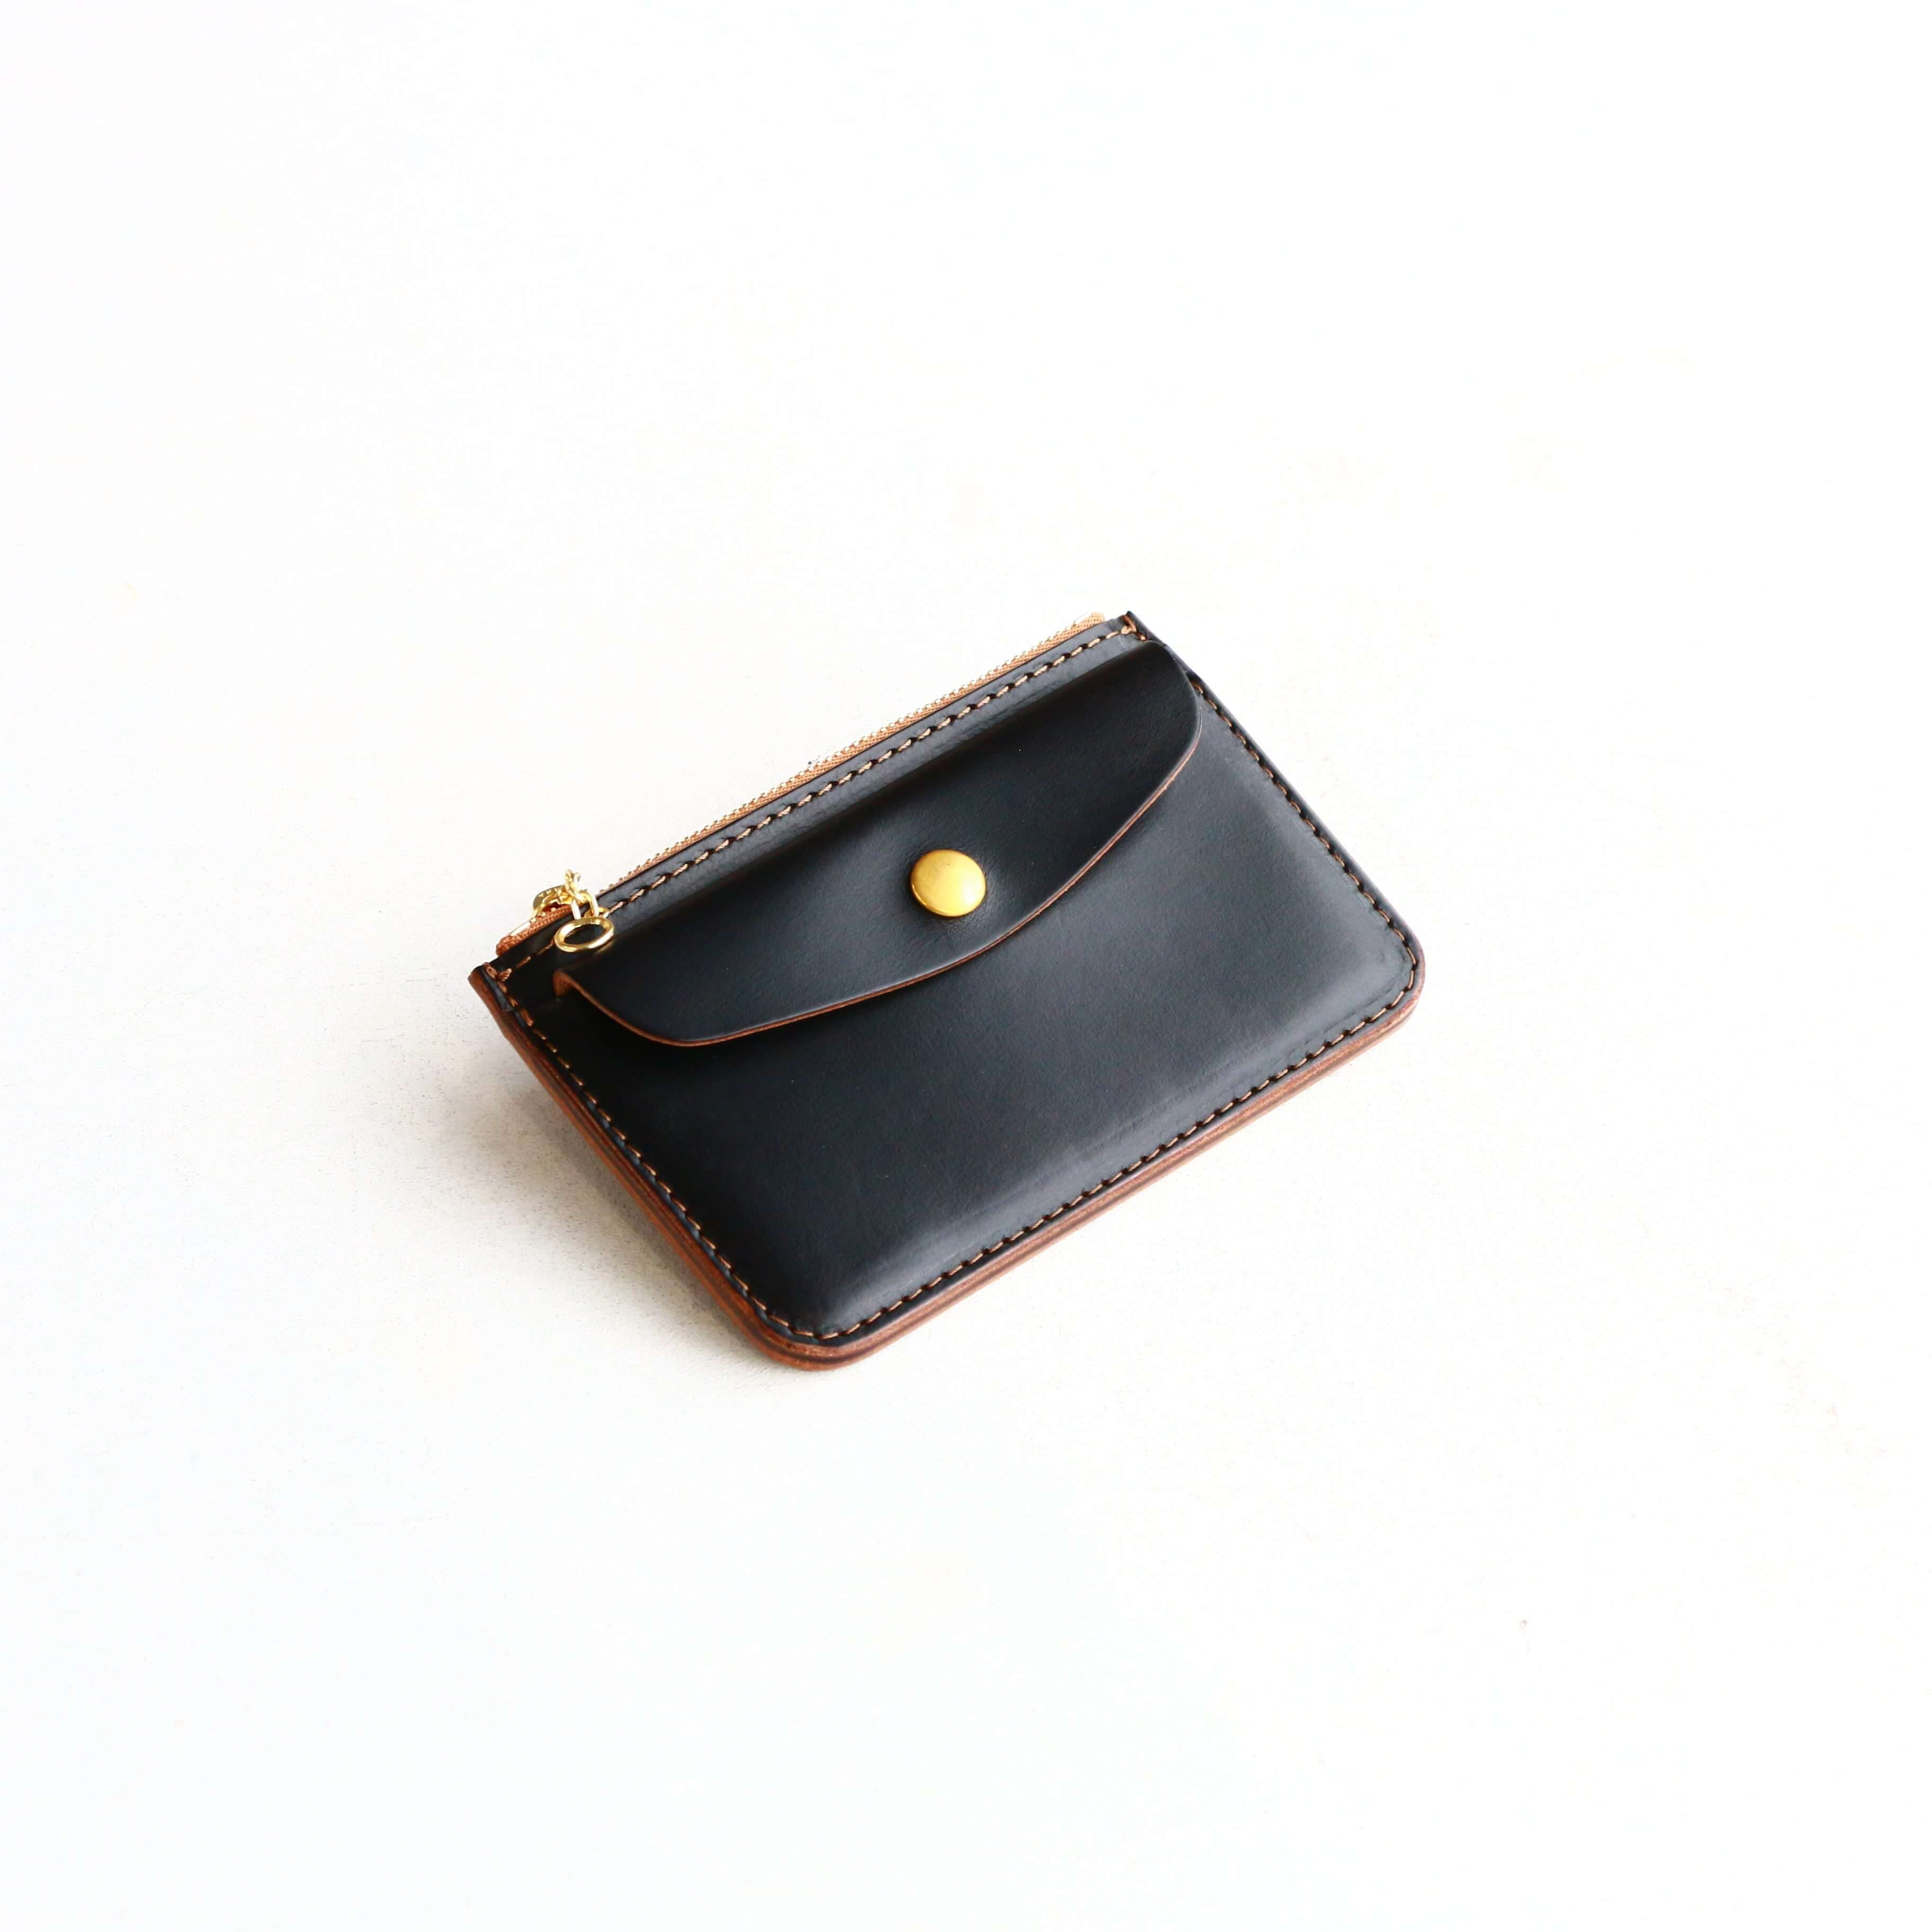 Vintage Works ヴィンテージワークス Leather Wallet クロムエクセルウォレット ブラック